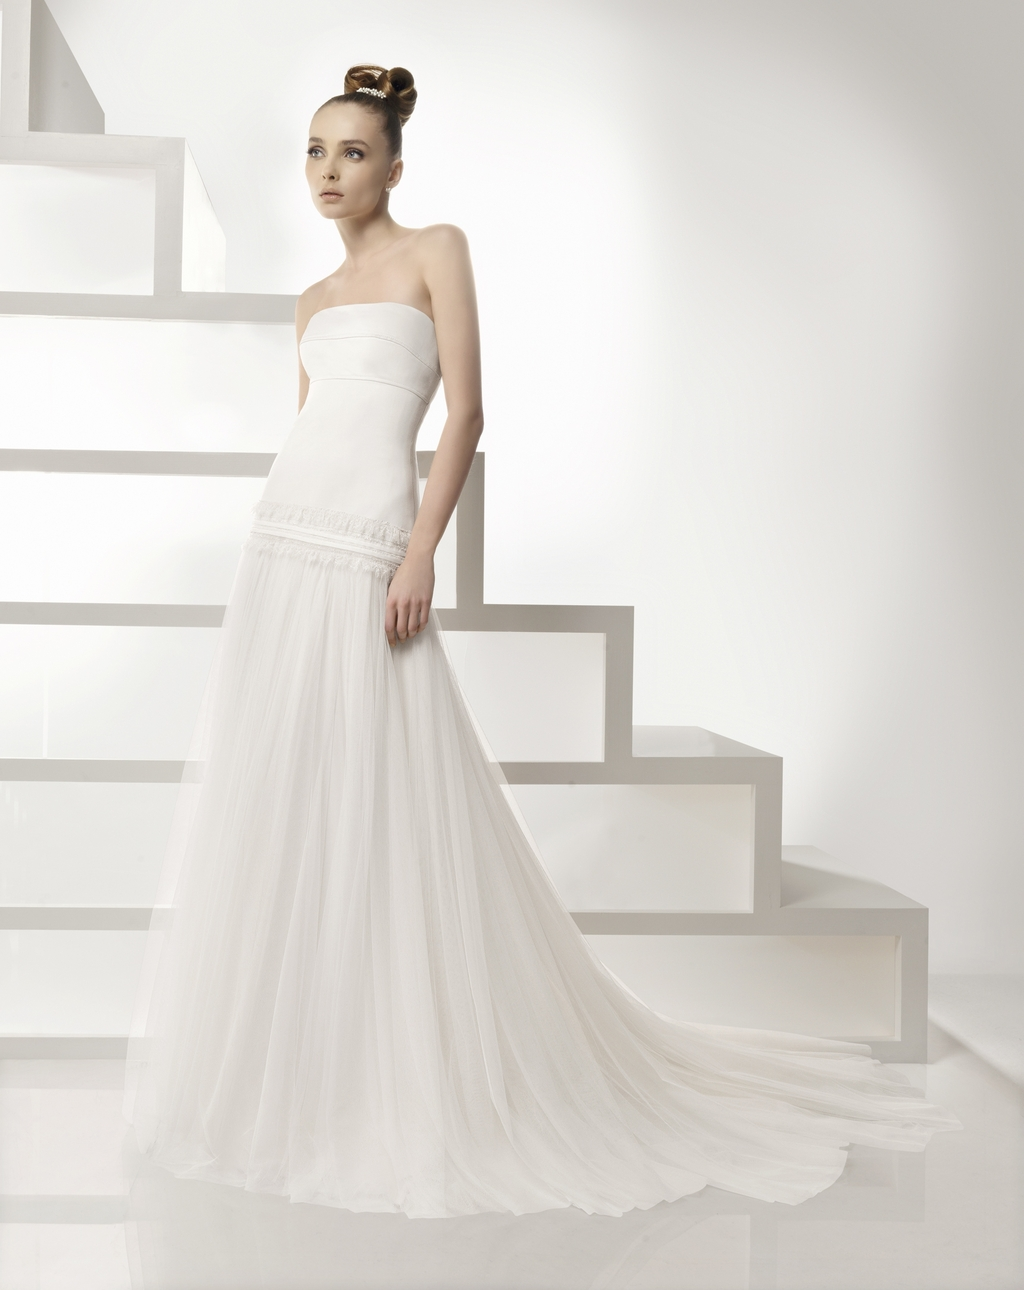 203-eclipse-strapless-ivory-wedding-dress-2011-rosa-clara-a-line.full